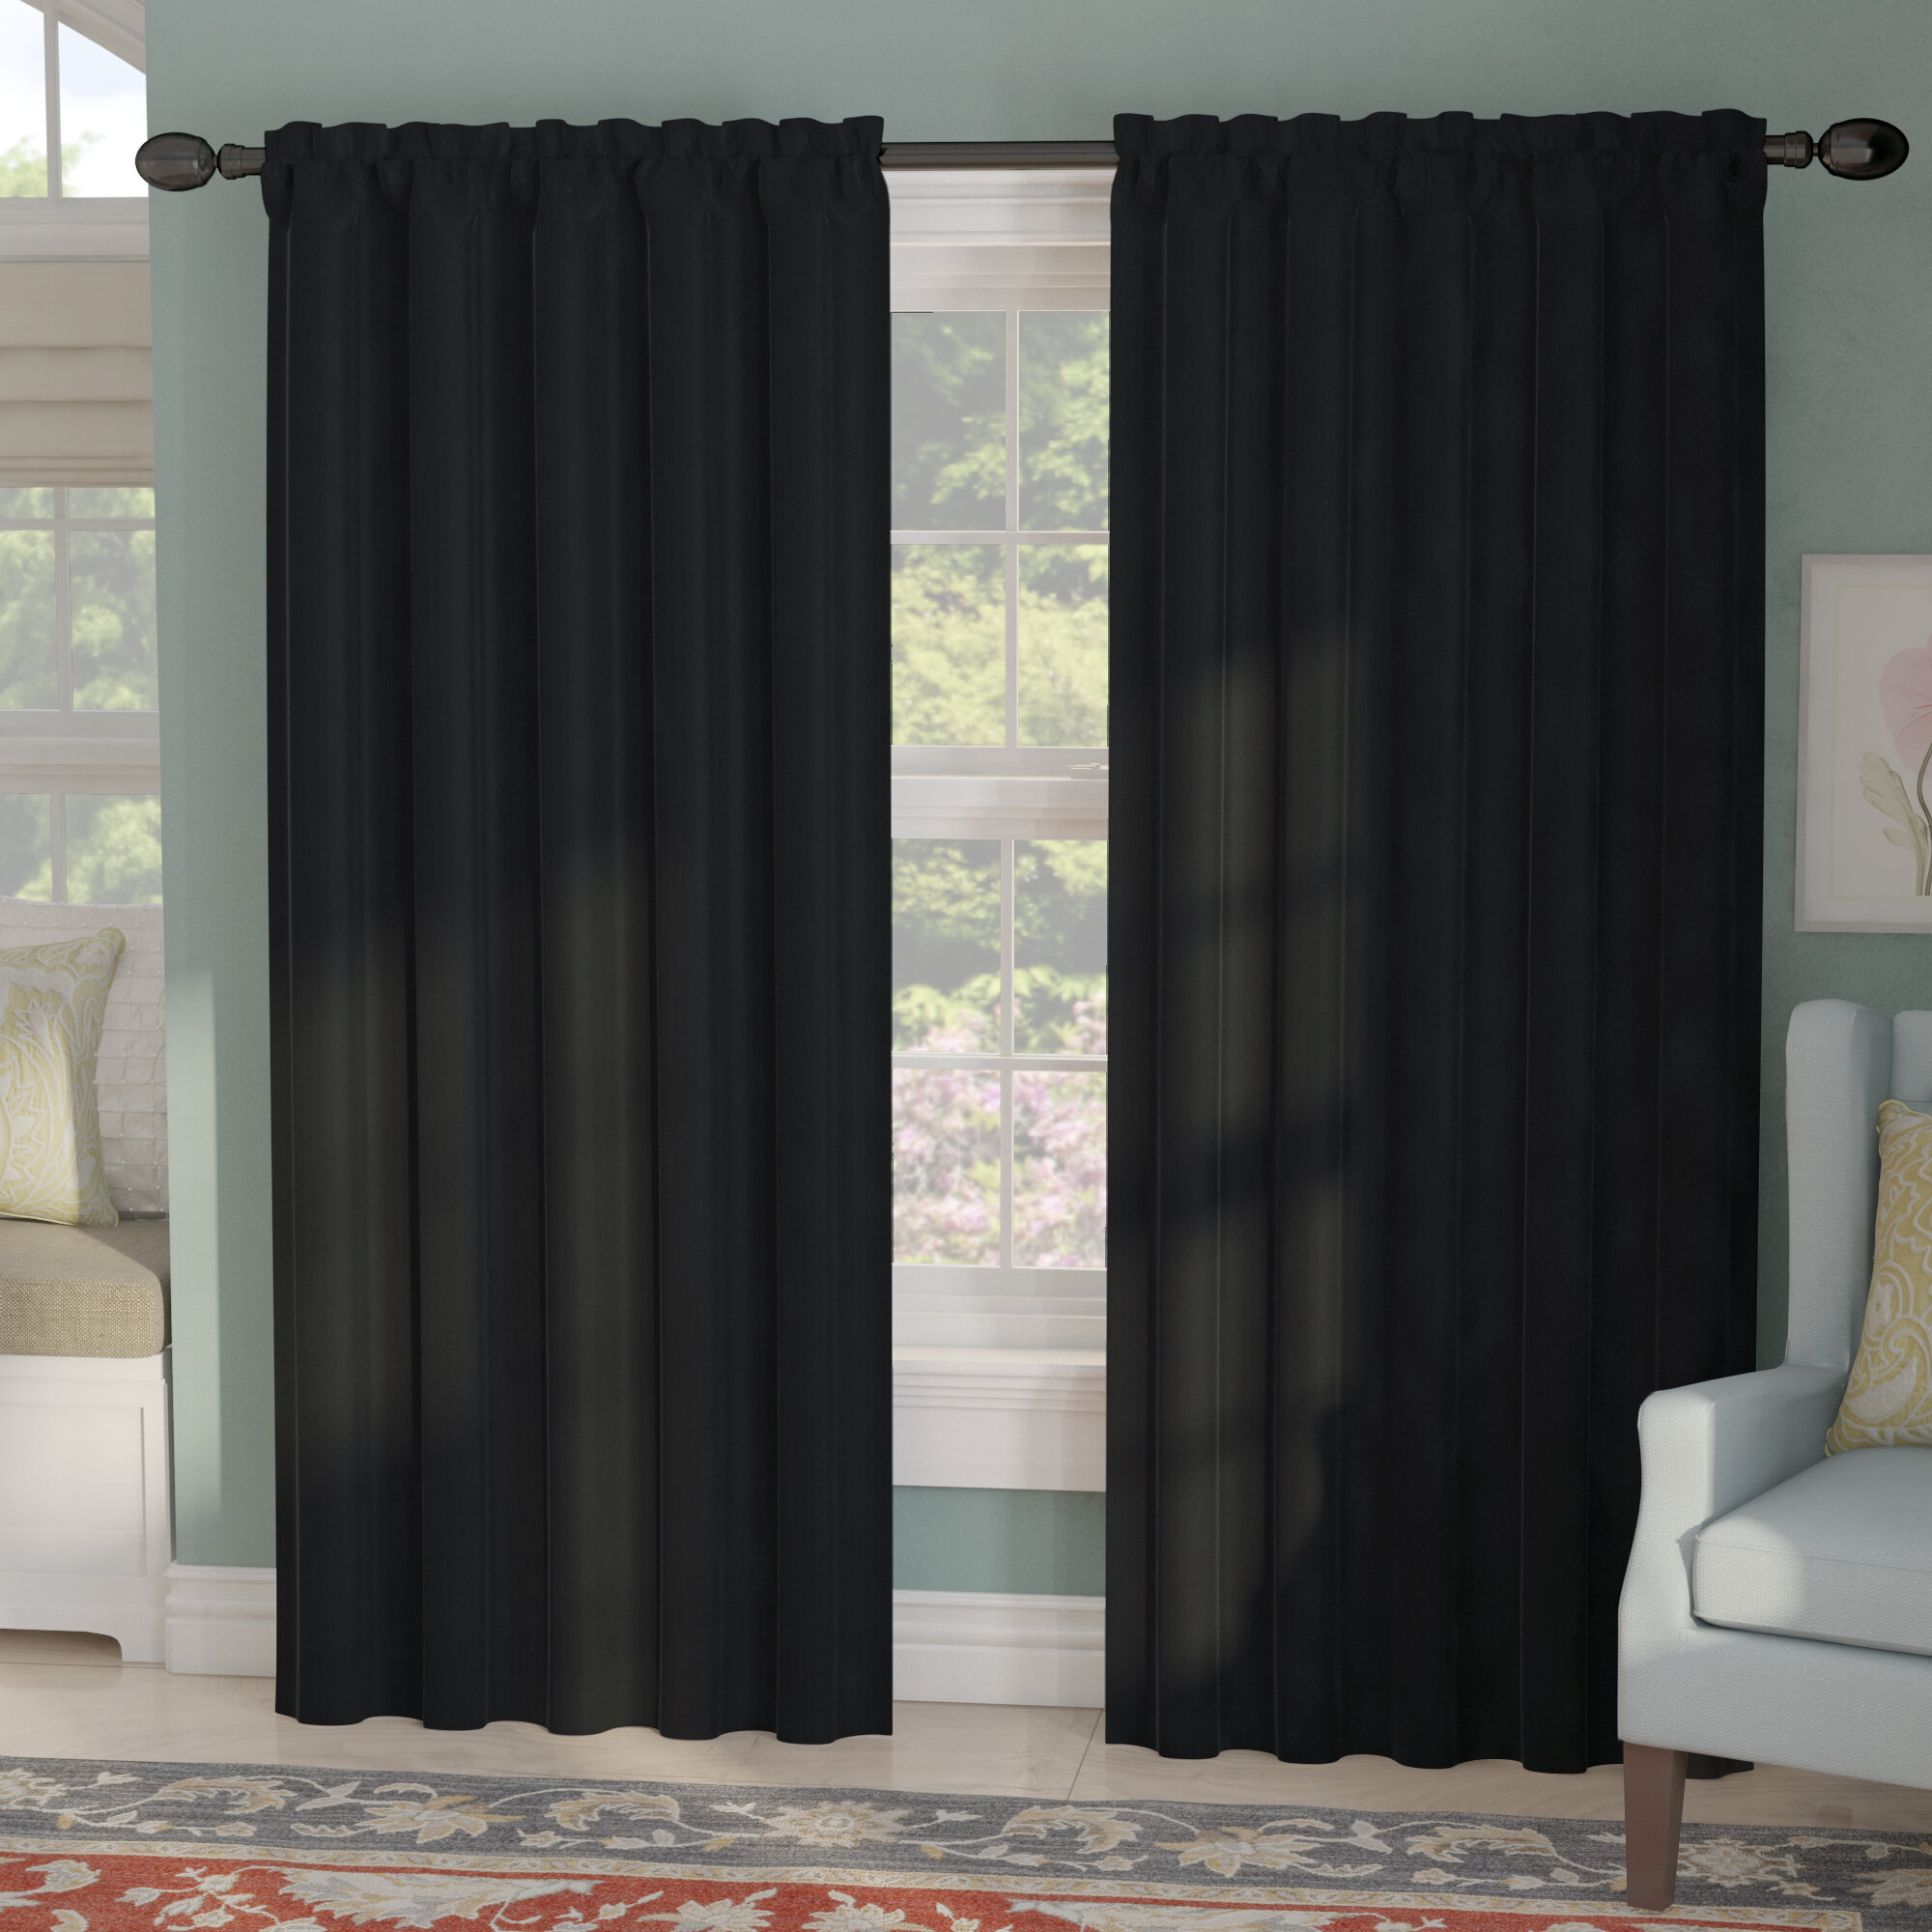 Mable Solid Blackout Thermal Rod Pocket Curtain Panels Throughout Thermal Rod Pocket Blackout Curtain Panel Pairs (View 12 of 30)